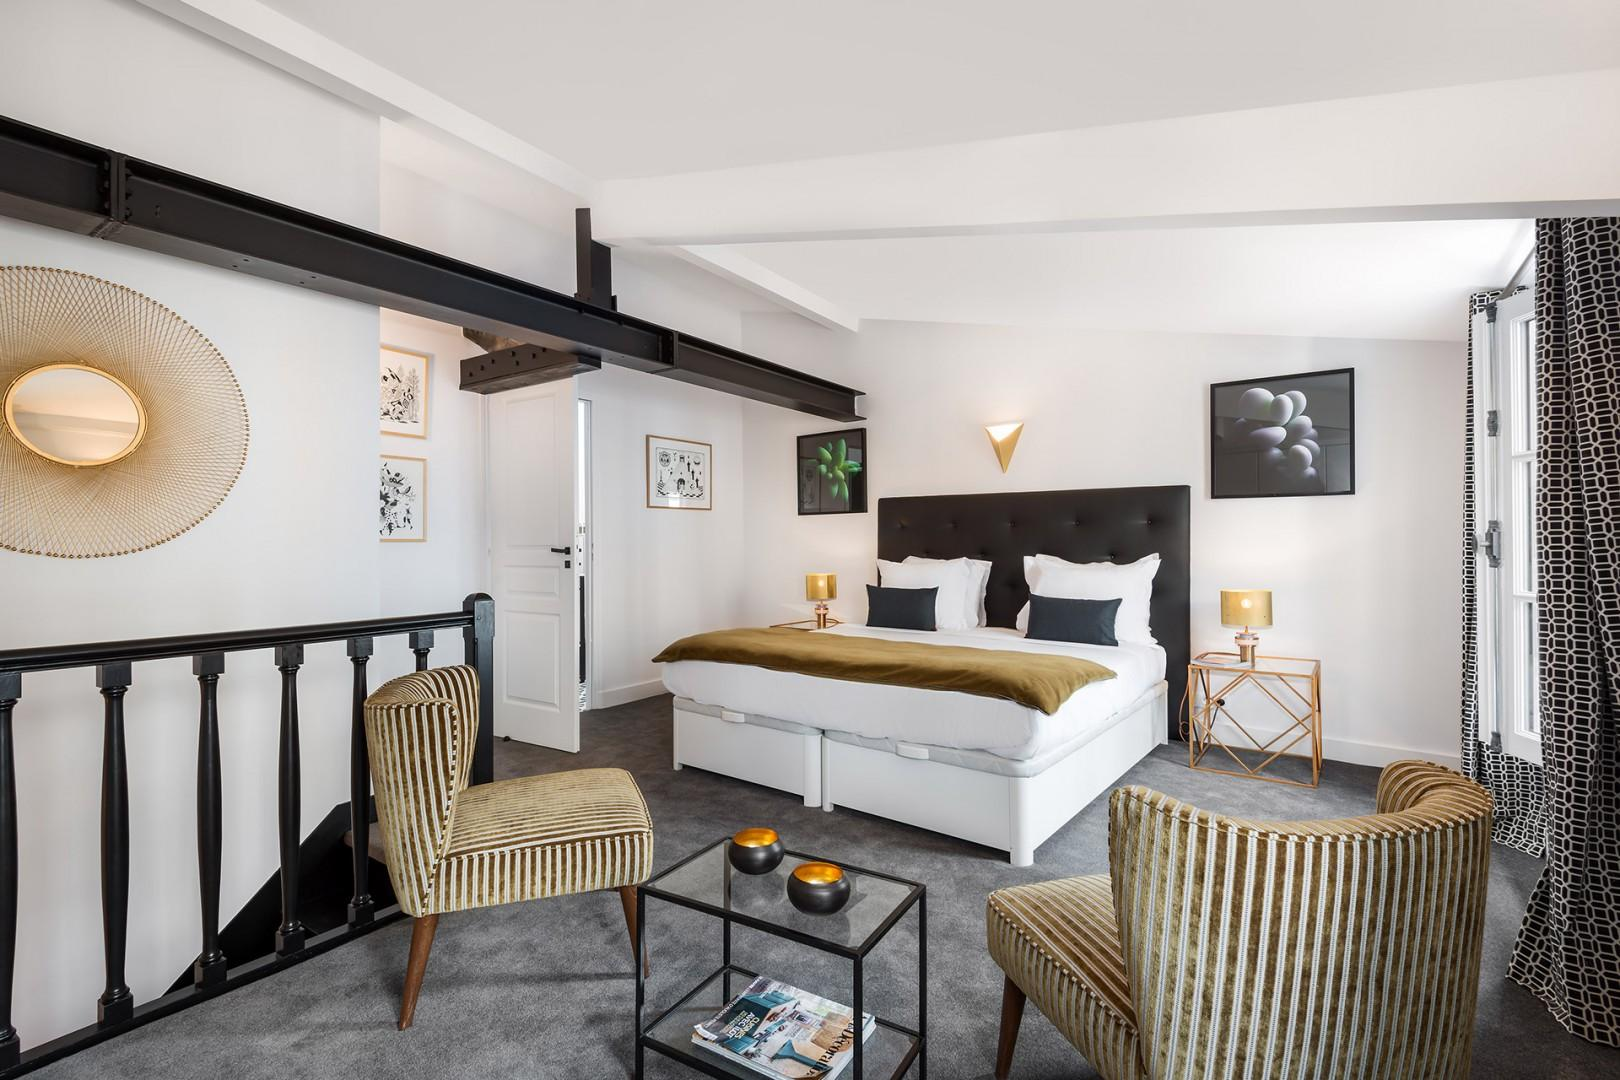 Bedroom 3 is decorated to evoke luxury, but also homeliness.